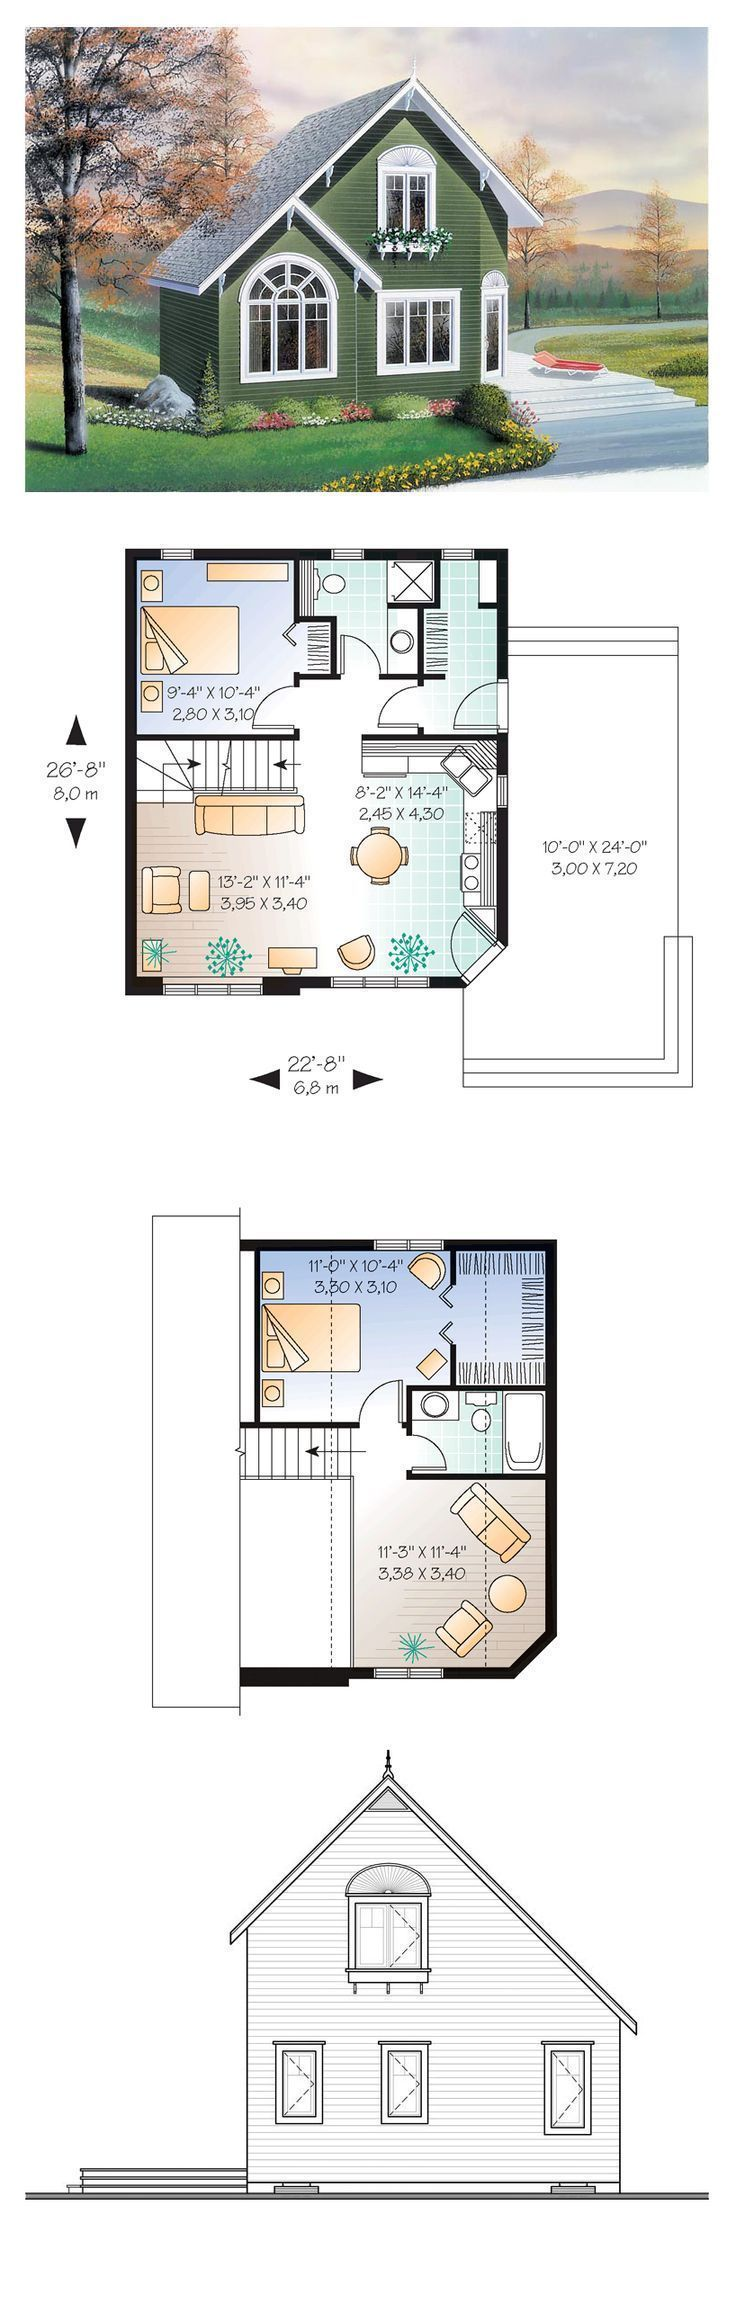 Narrow plot 76168  Total living space 991 sqm 2 bedrooms and 2 bathrooms